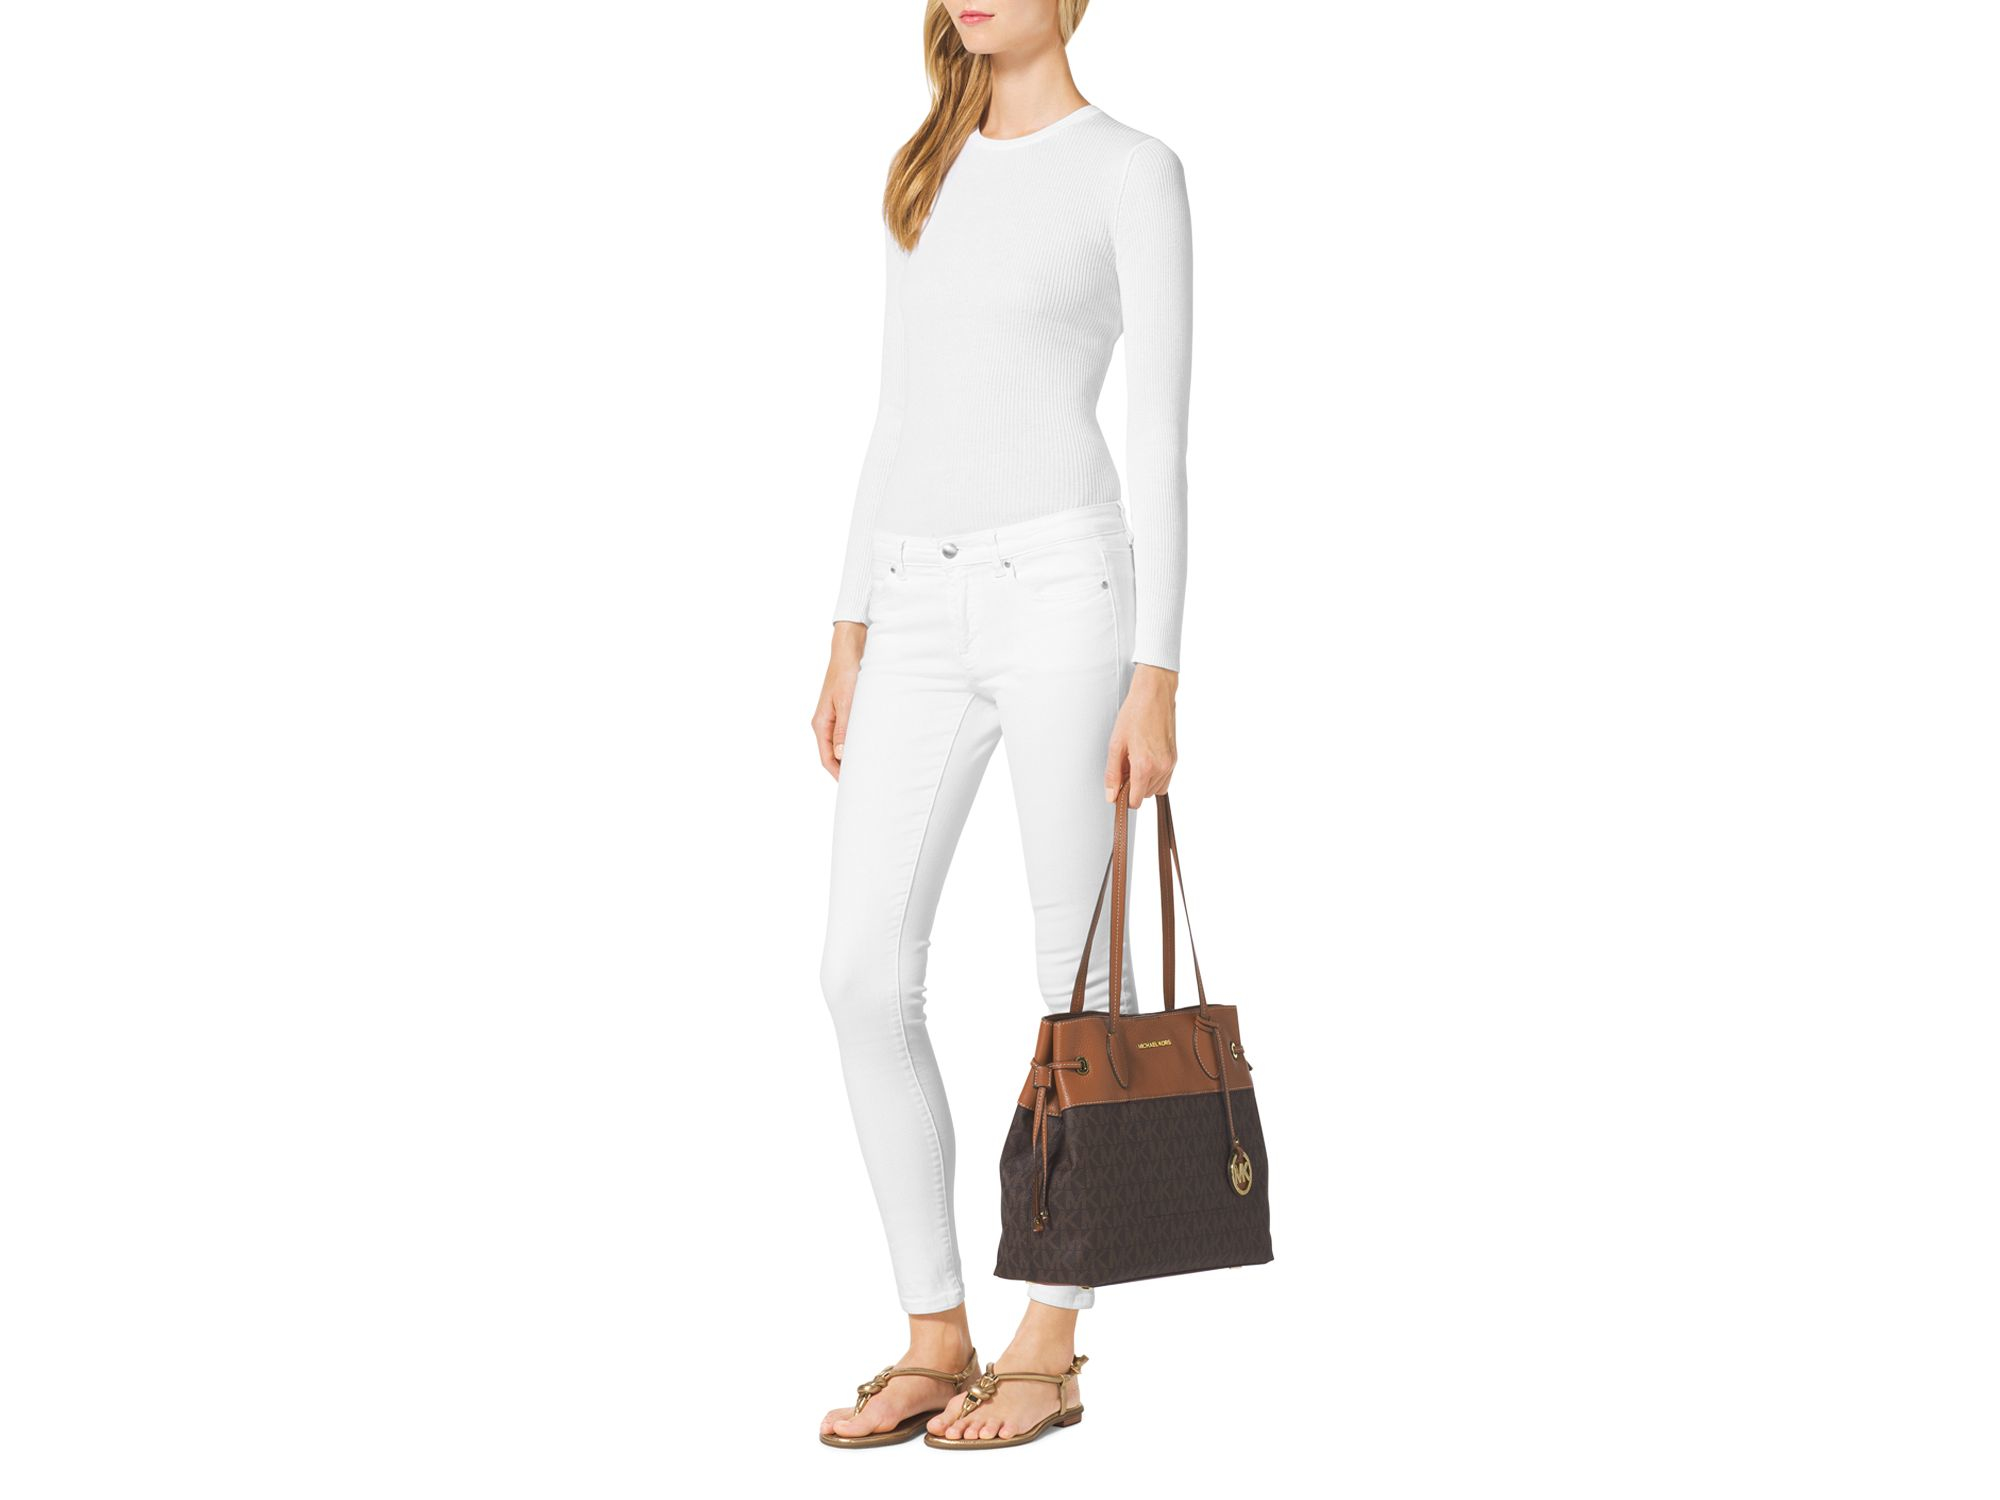 85e1477e2f0b Gallery. Previously sold at: Bloomingdale's · Women's Michael Kors Marina